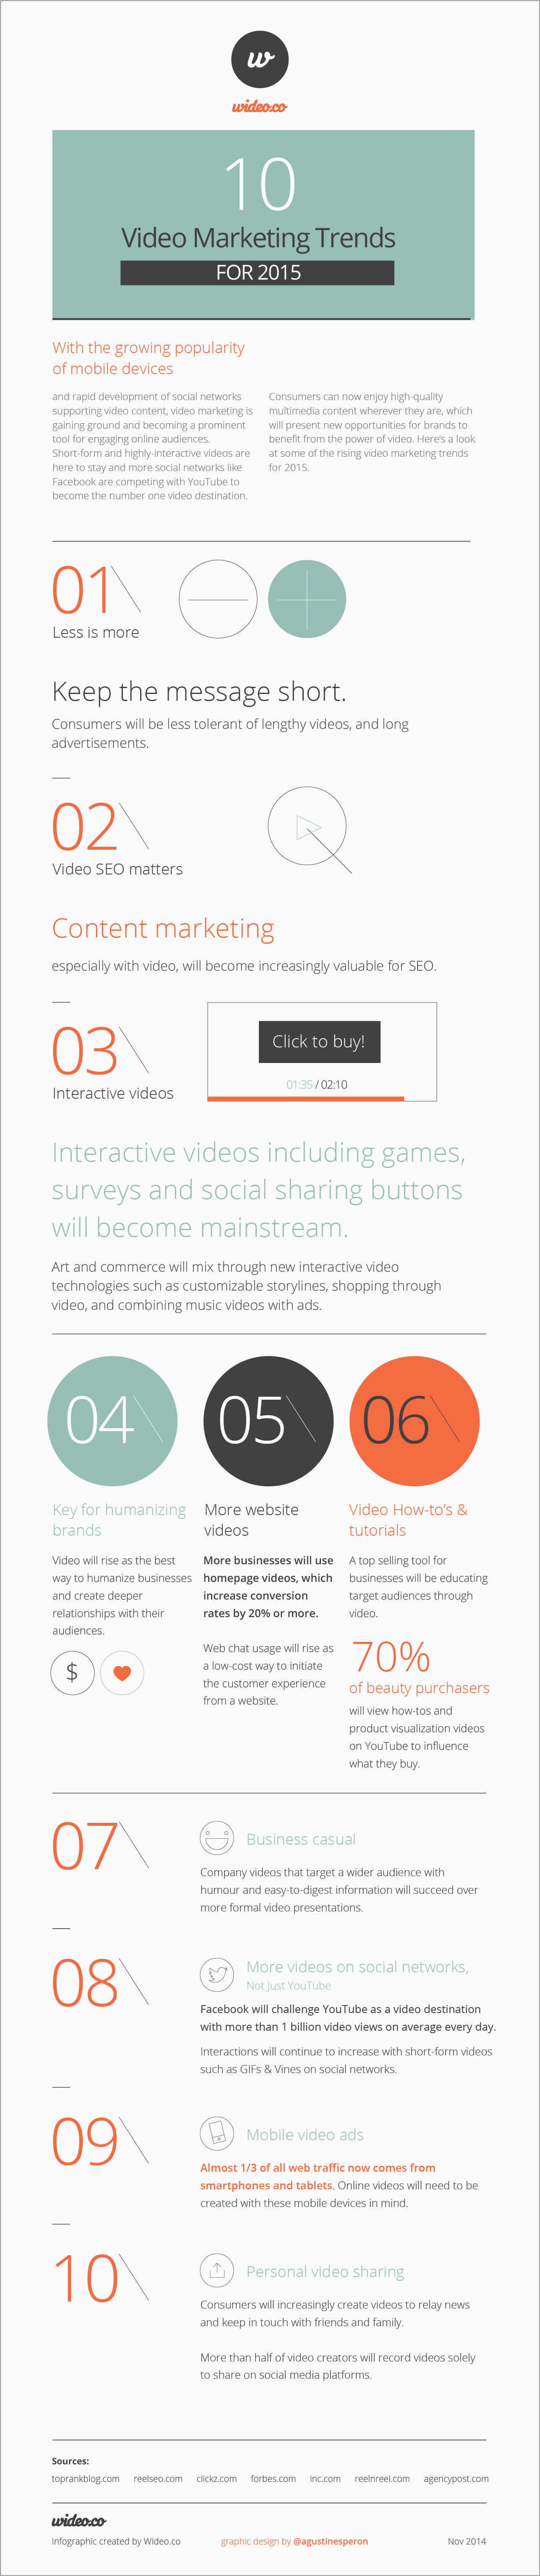 10 Video Marketing Trends for 2015 [Infographic] image 10videomarketingtrends 021